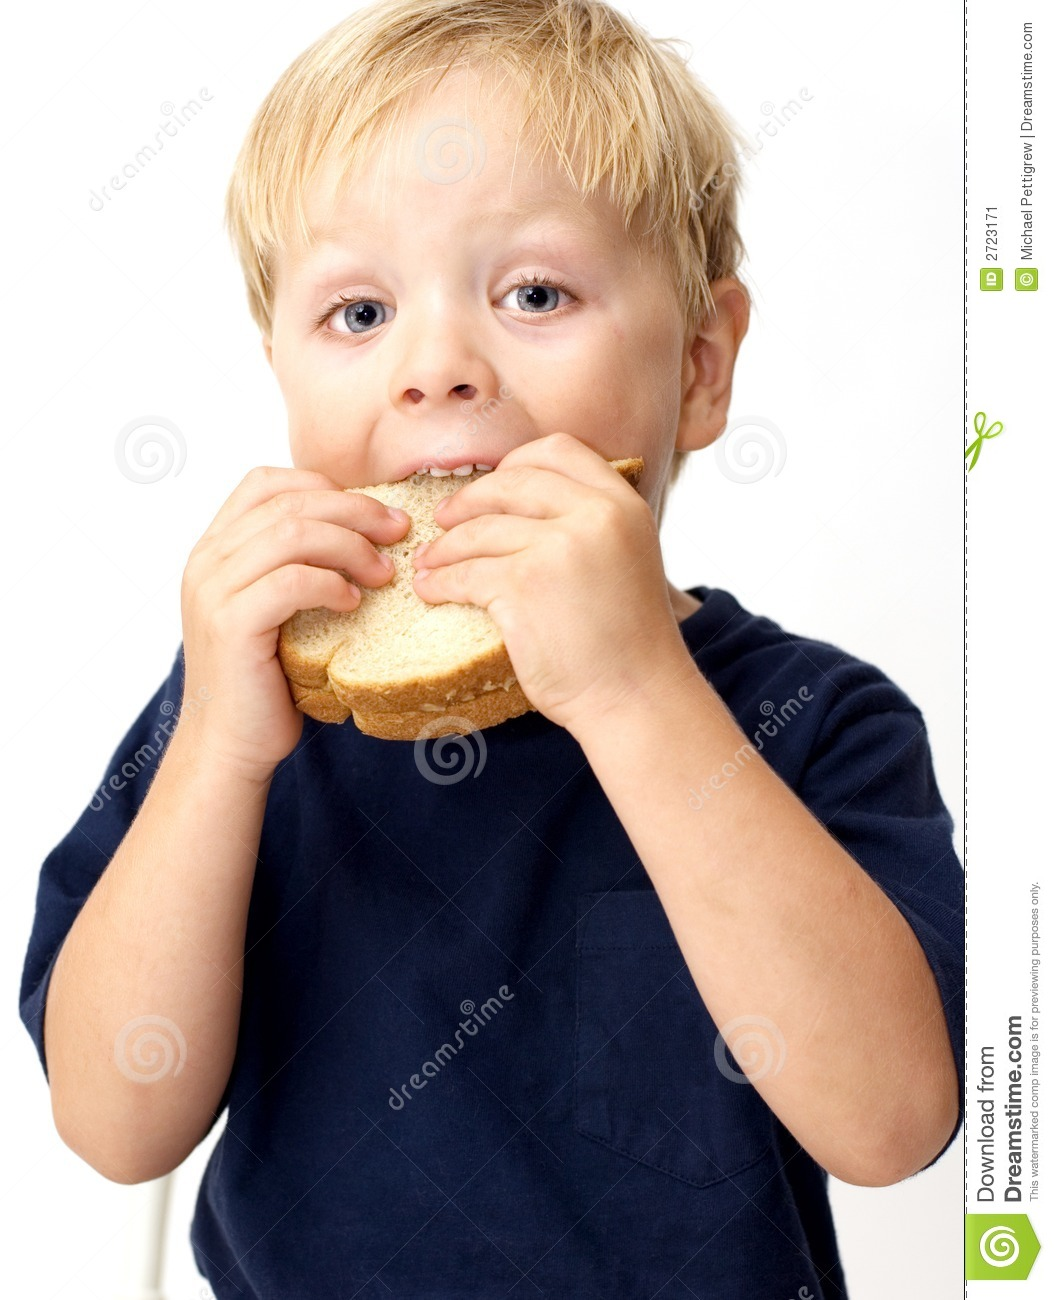 Boy taking a big bite of its peanut butter sandwich.